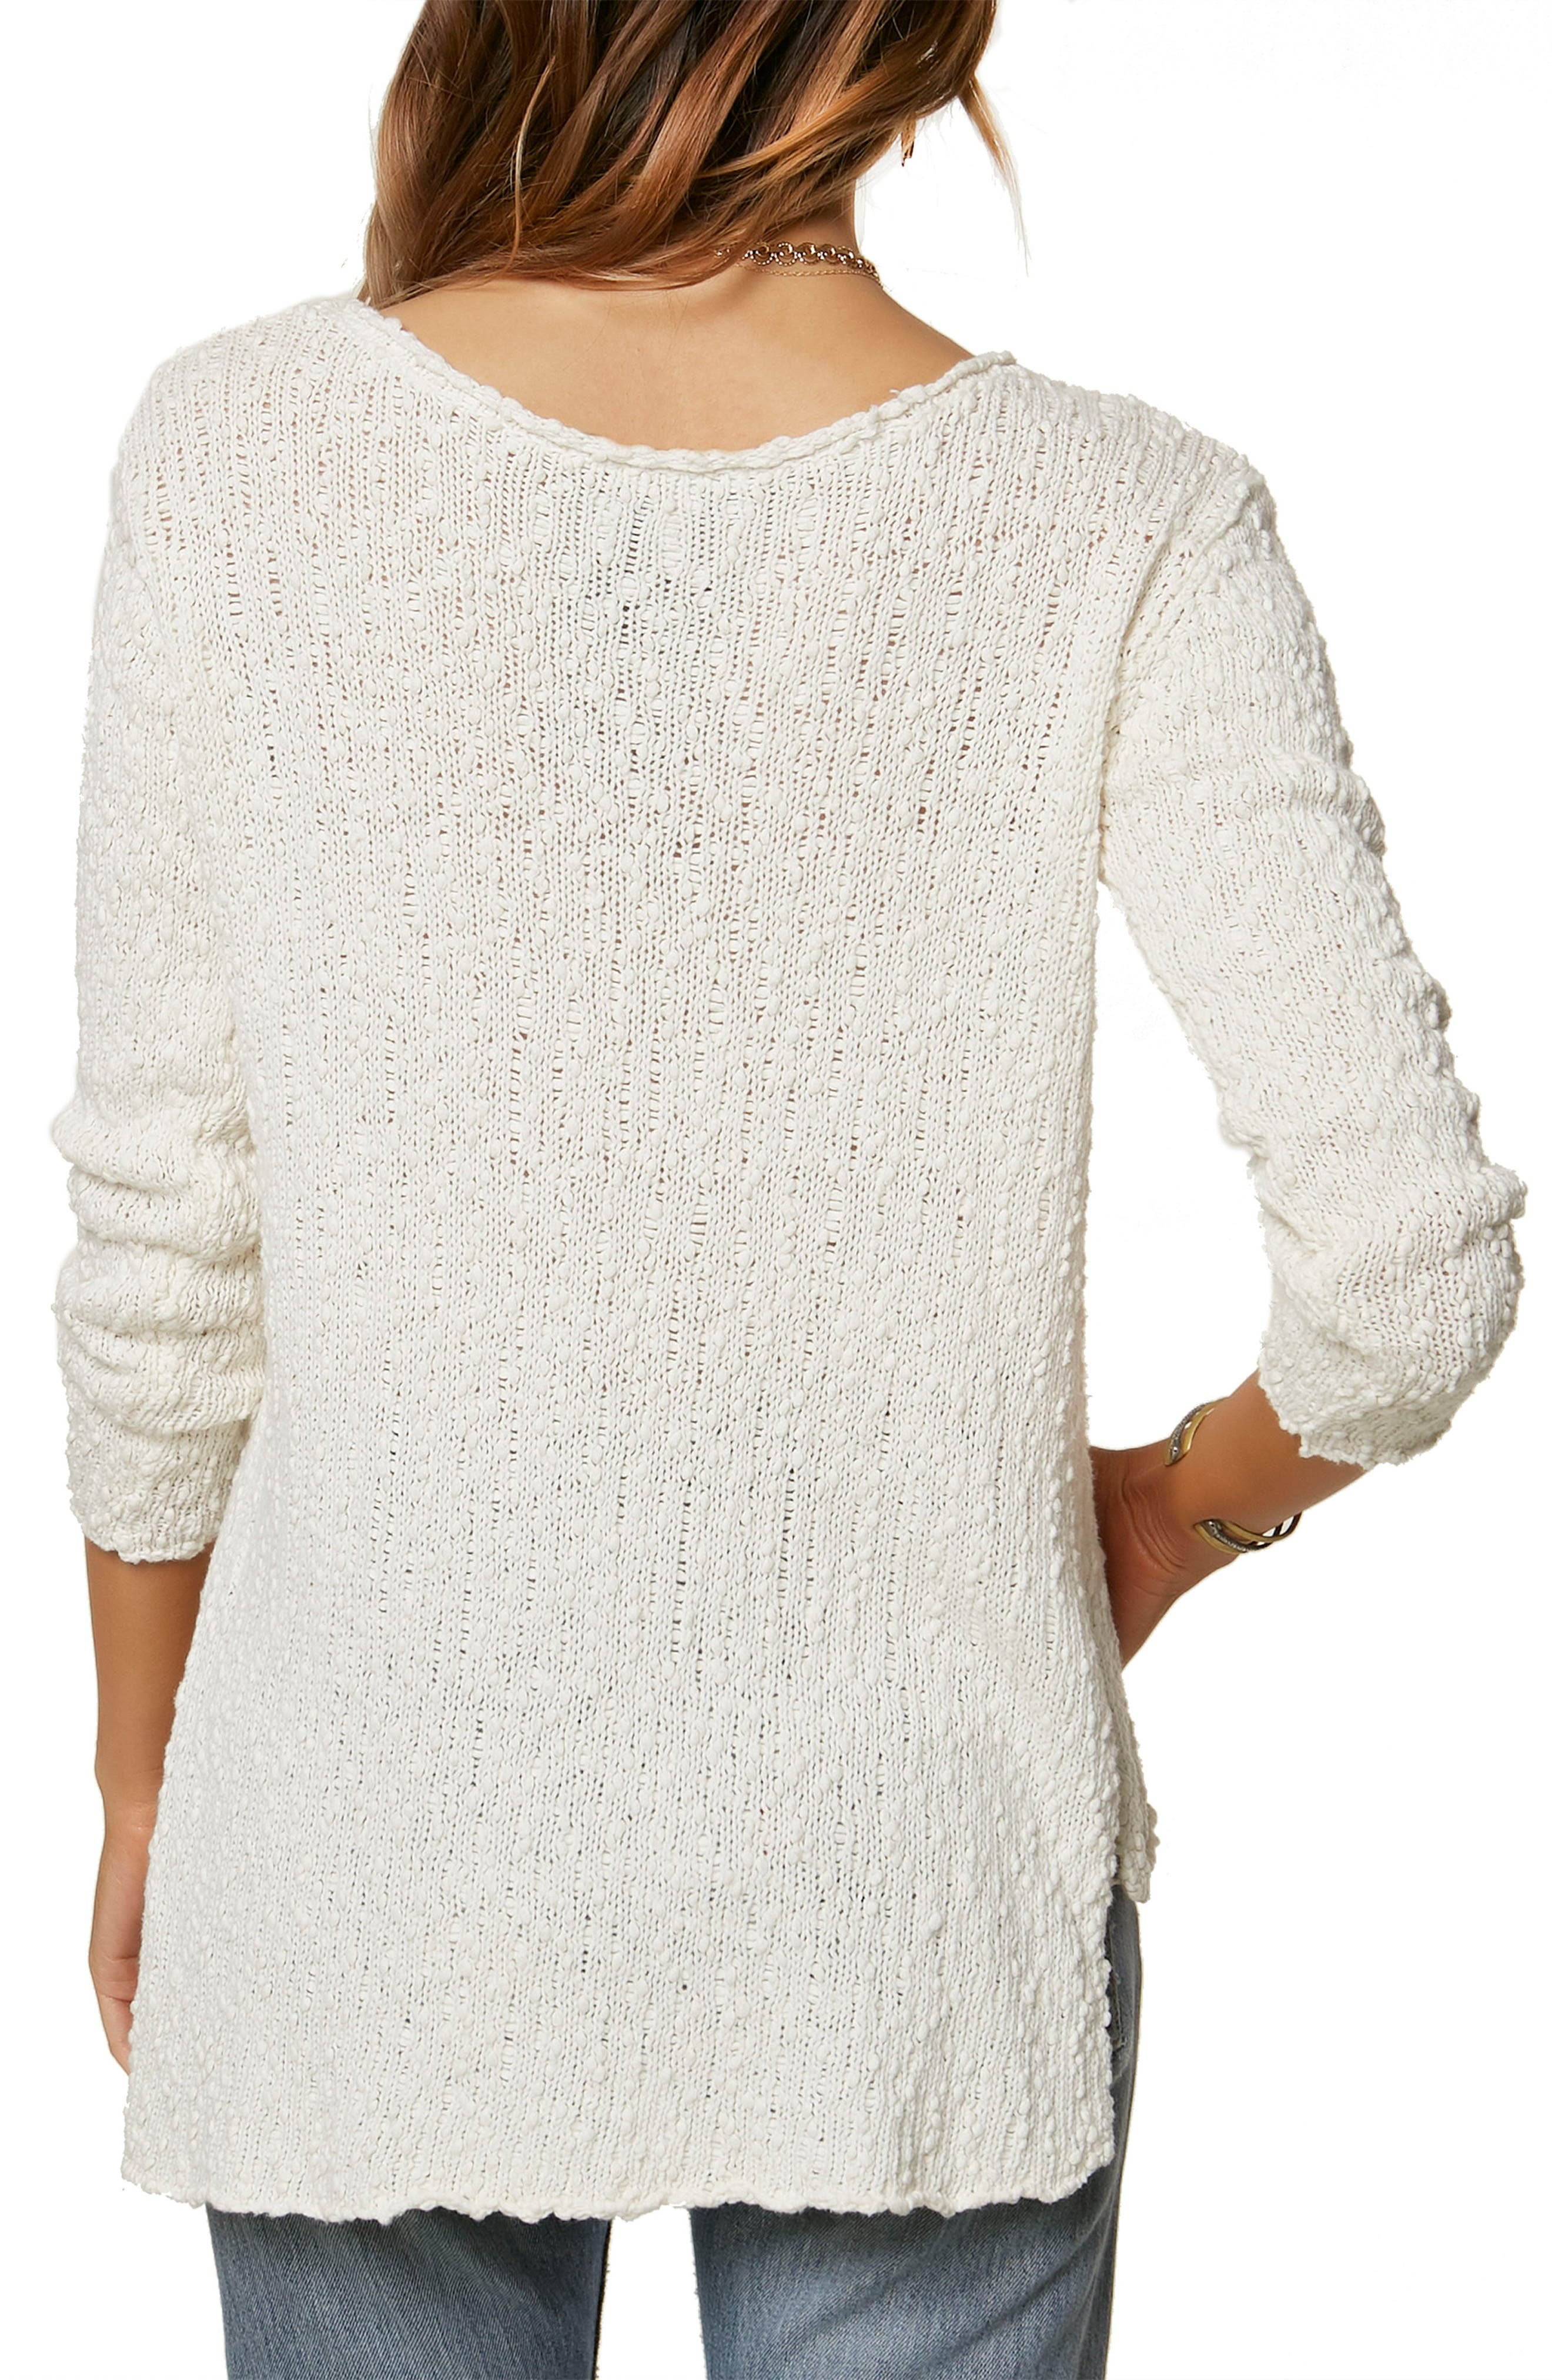 Rocha Pullover Sweater,                             Alternate thumbnail 2, color,                             Naked